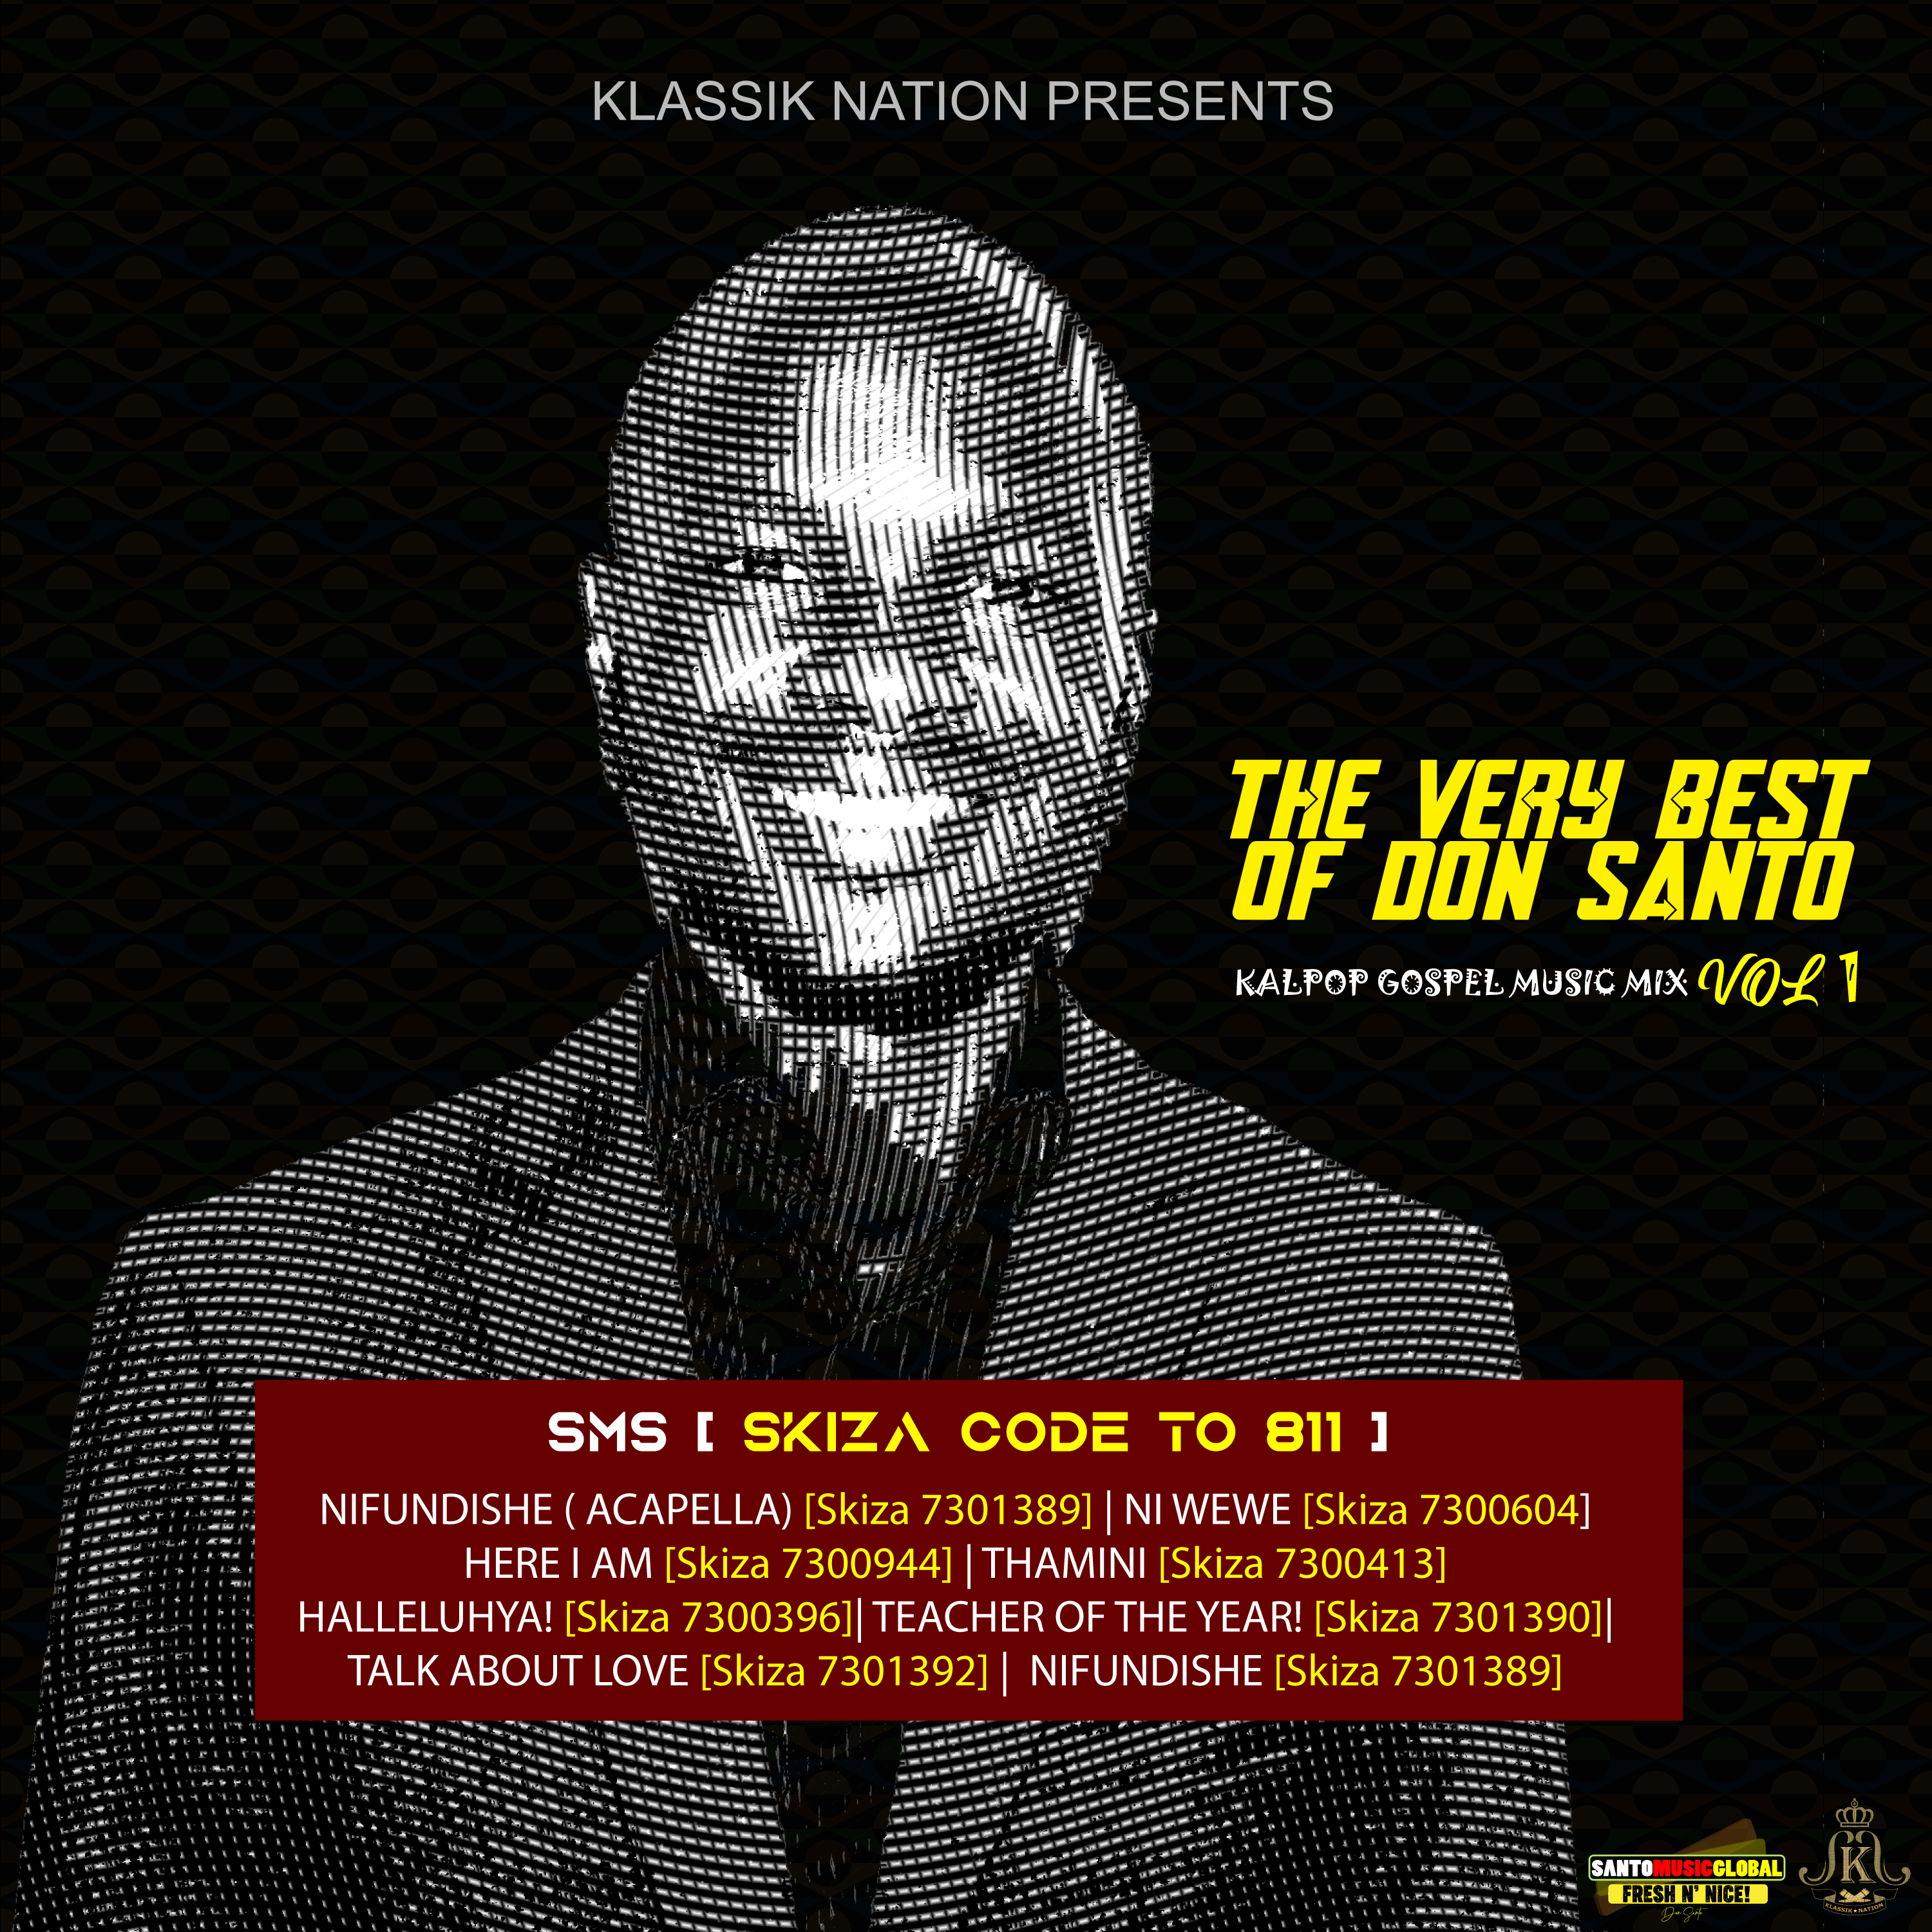 THE VERY BEST OF DON SANTO VOL 1 (Praise & Worship)